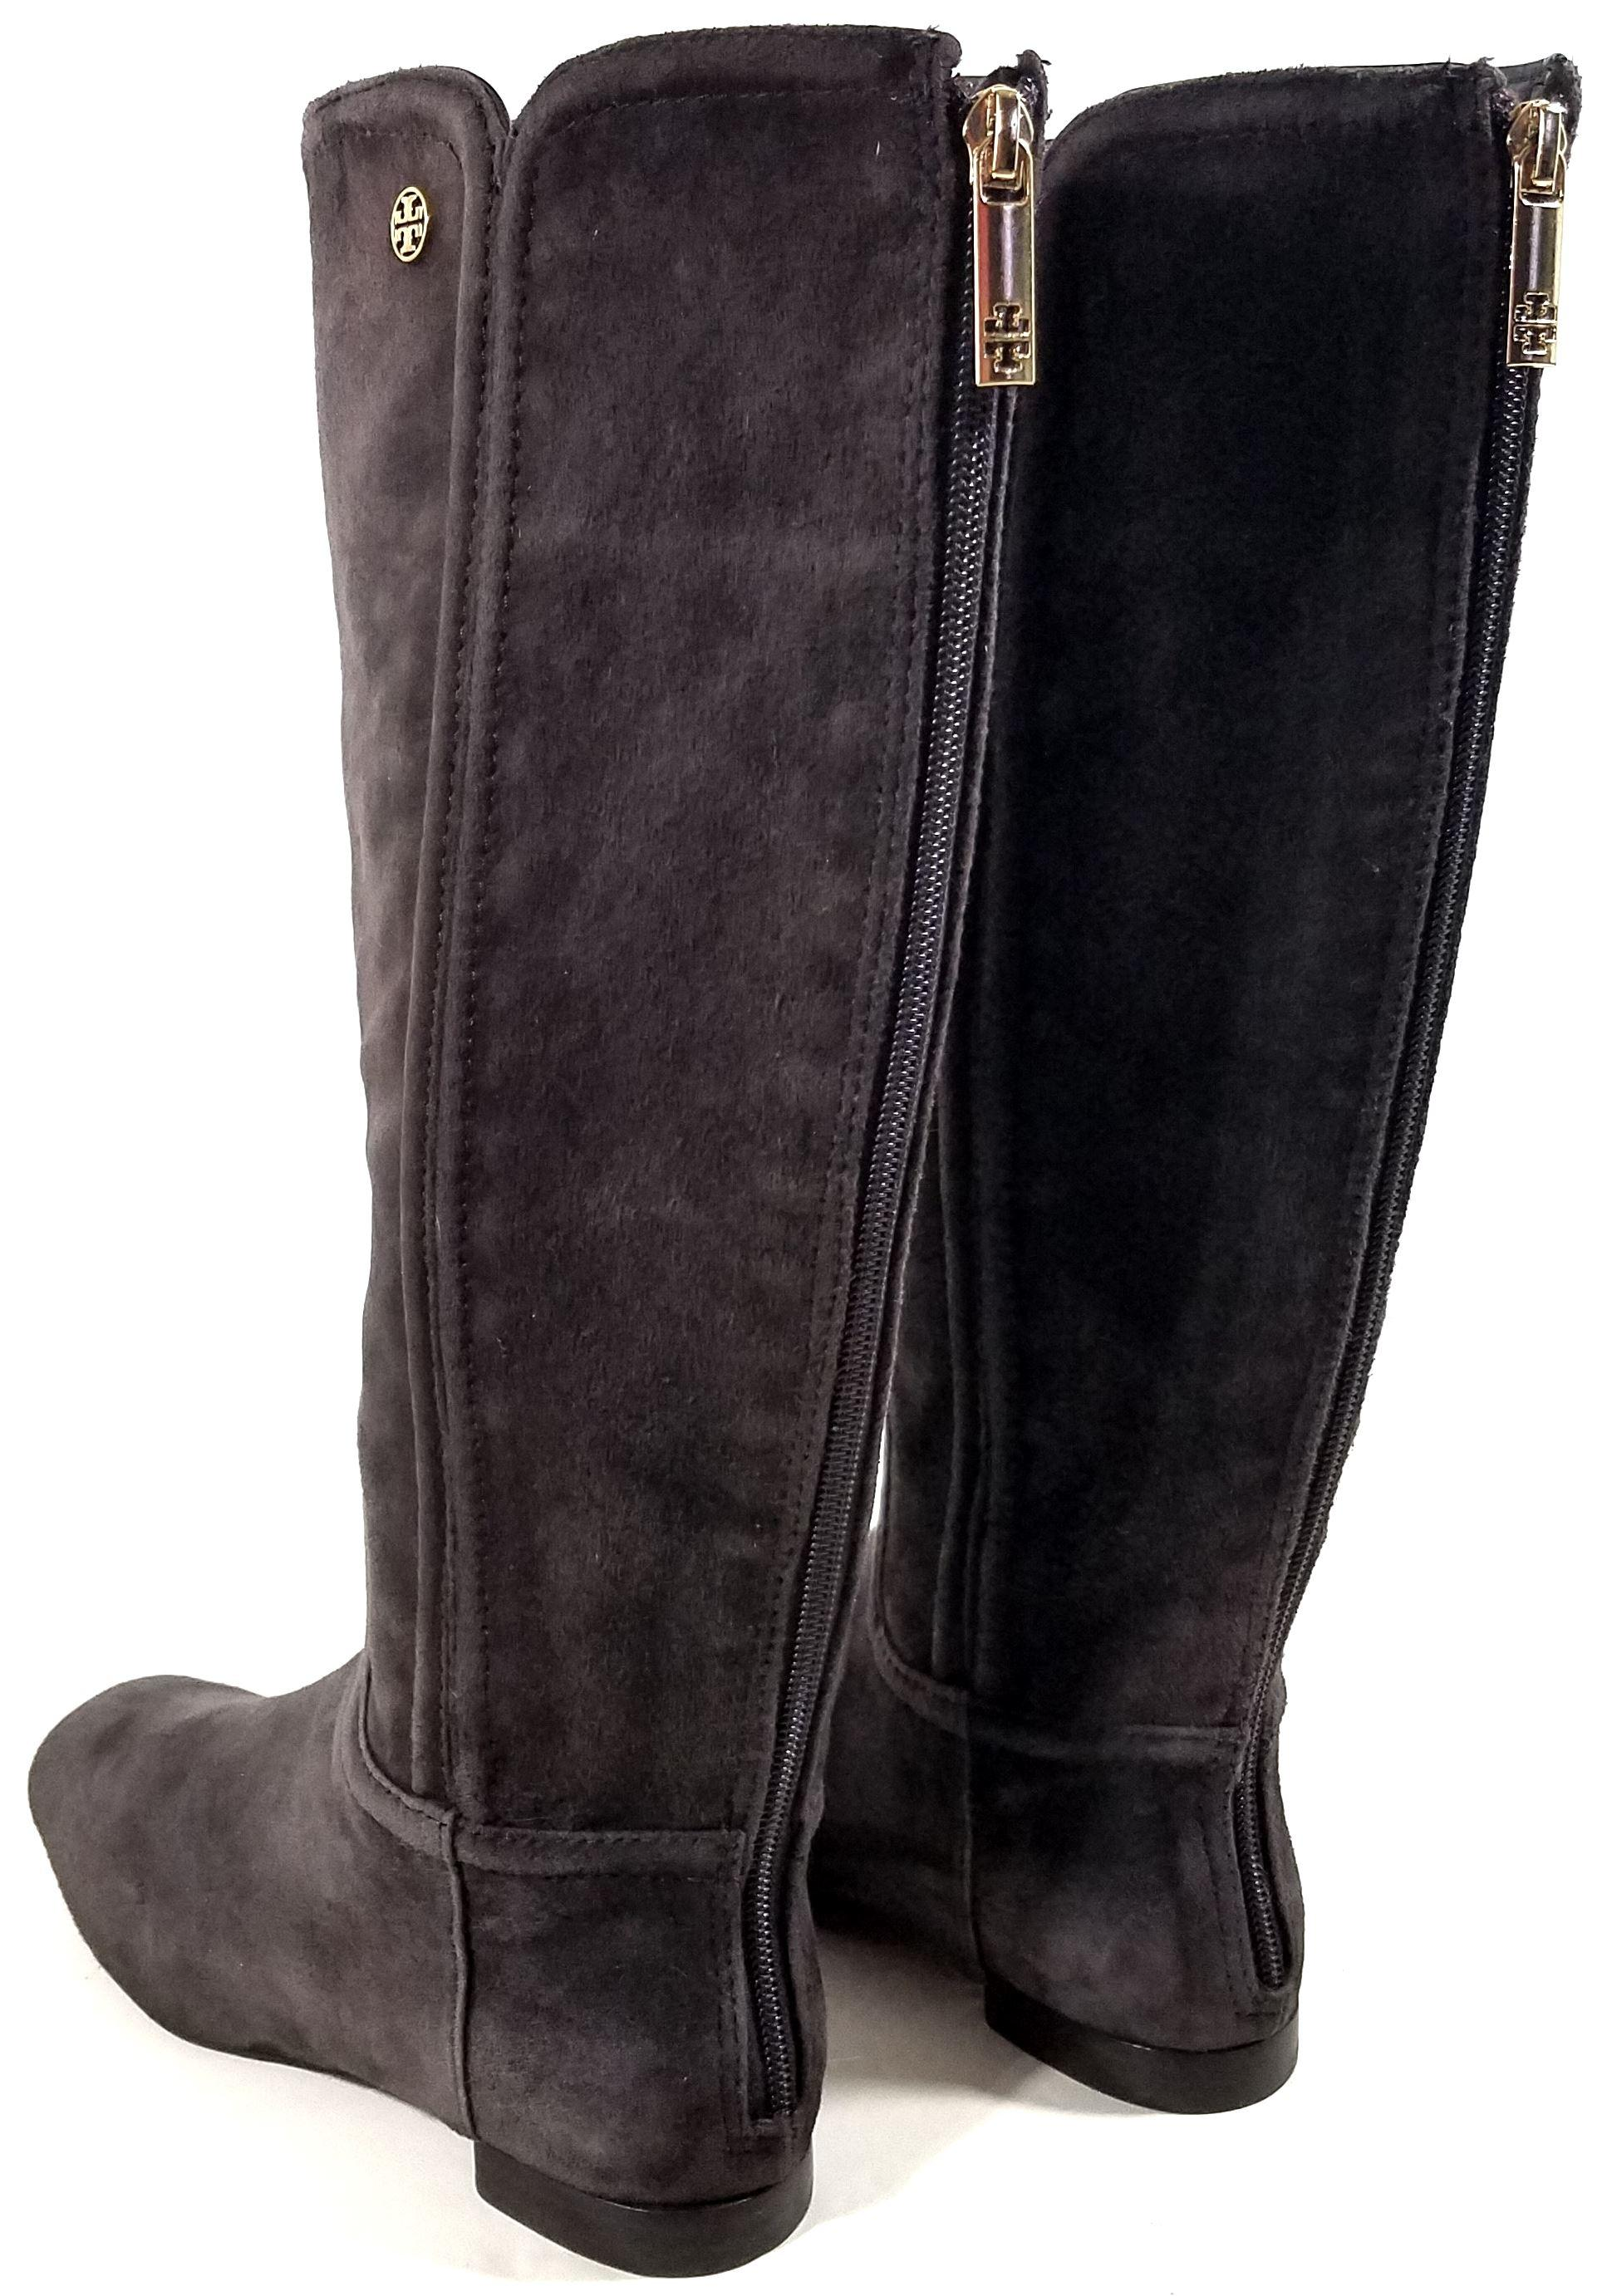 2f8a6c22c ... ebay tory burch coconut brown irene riding boots booties size us 6.5  207d8 d6228